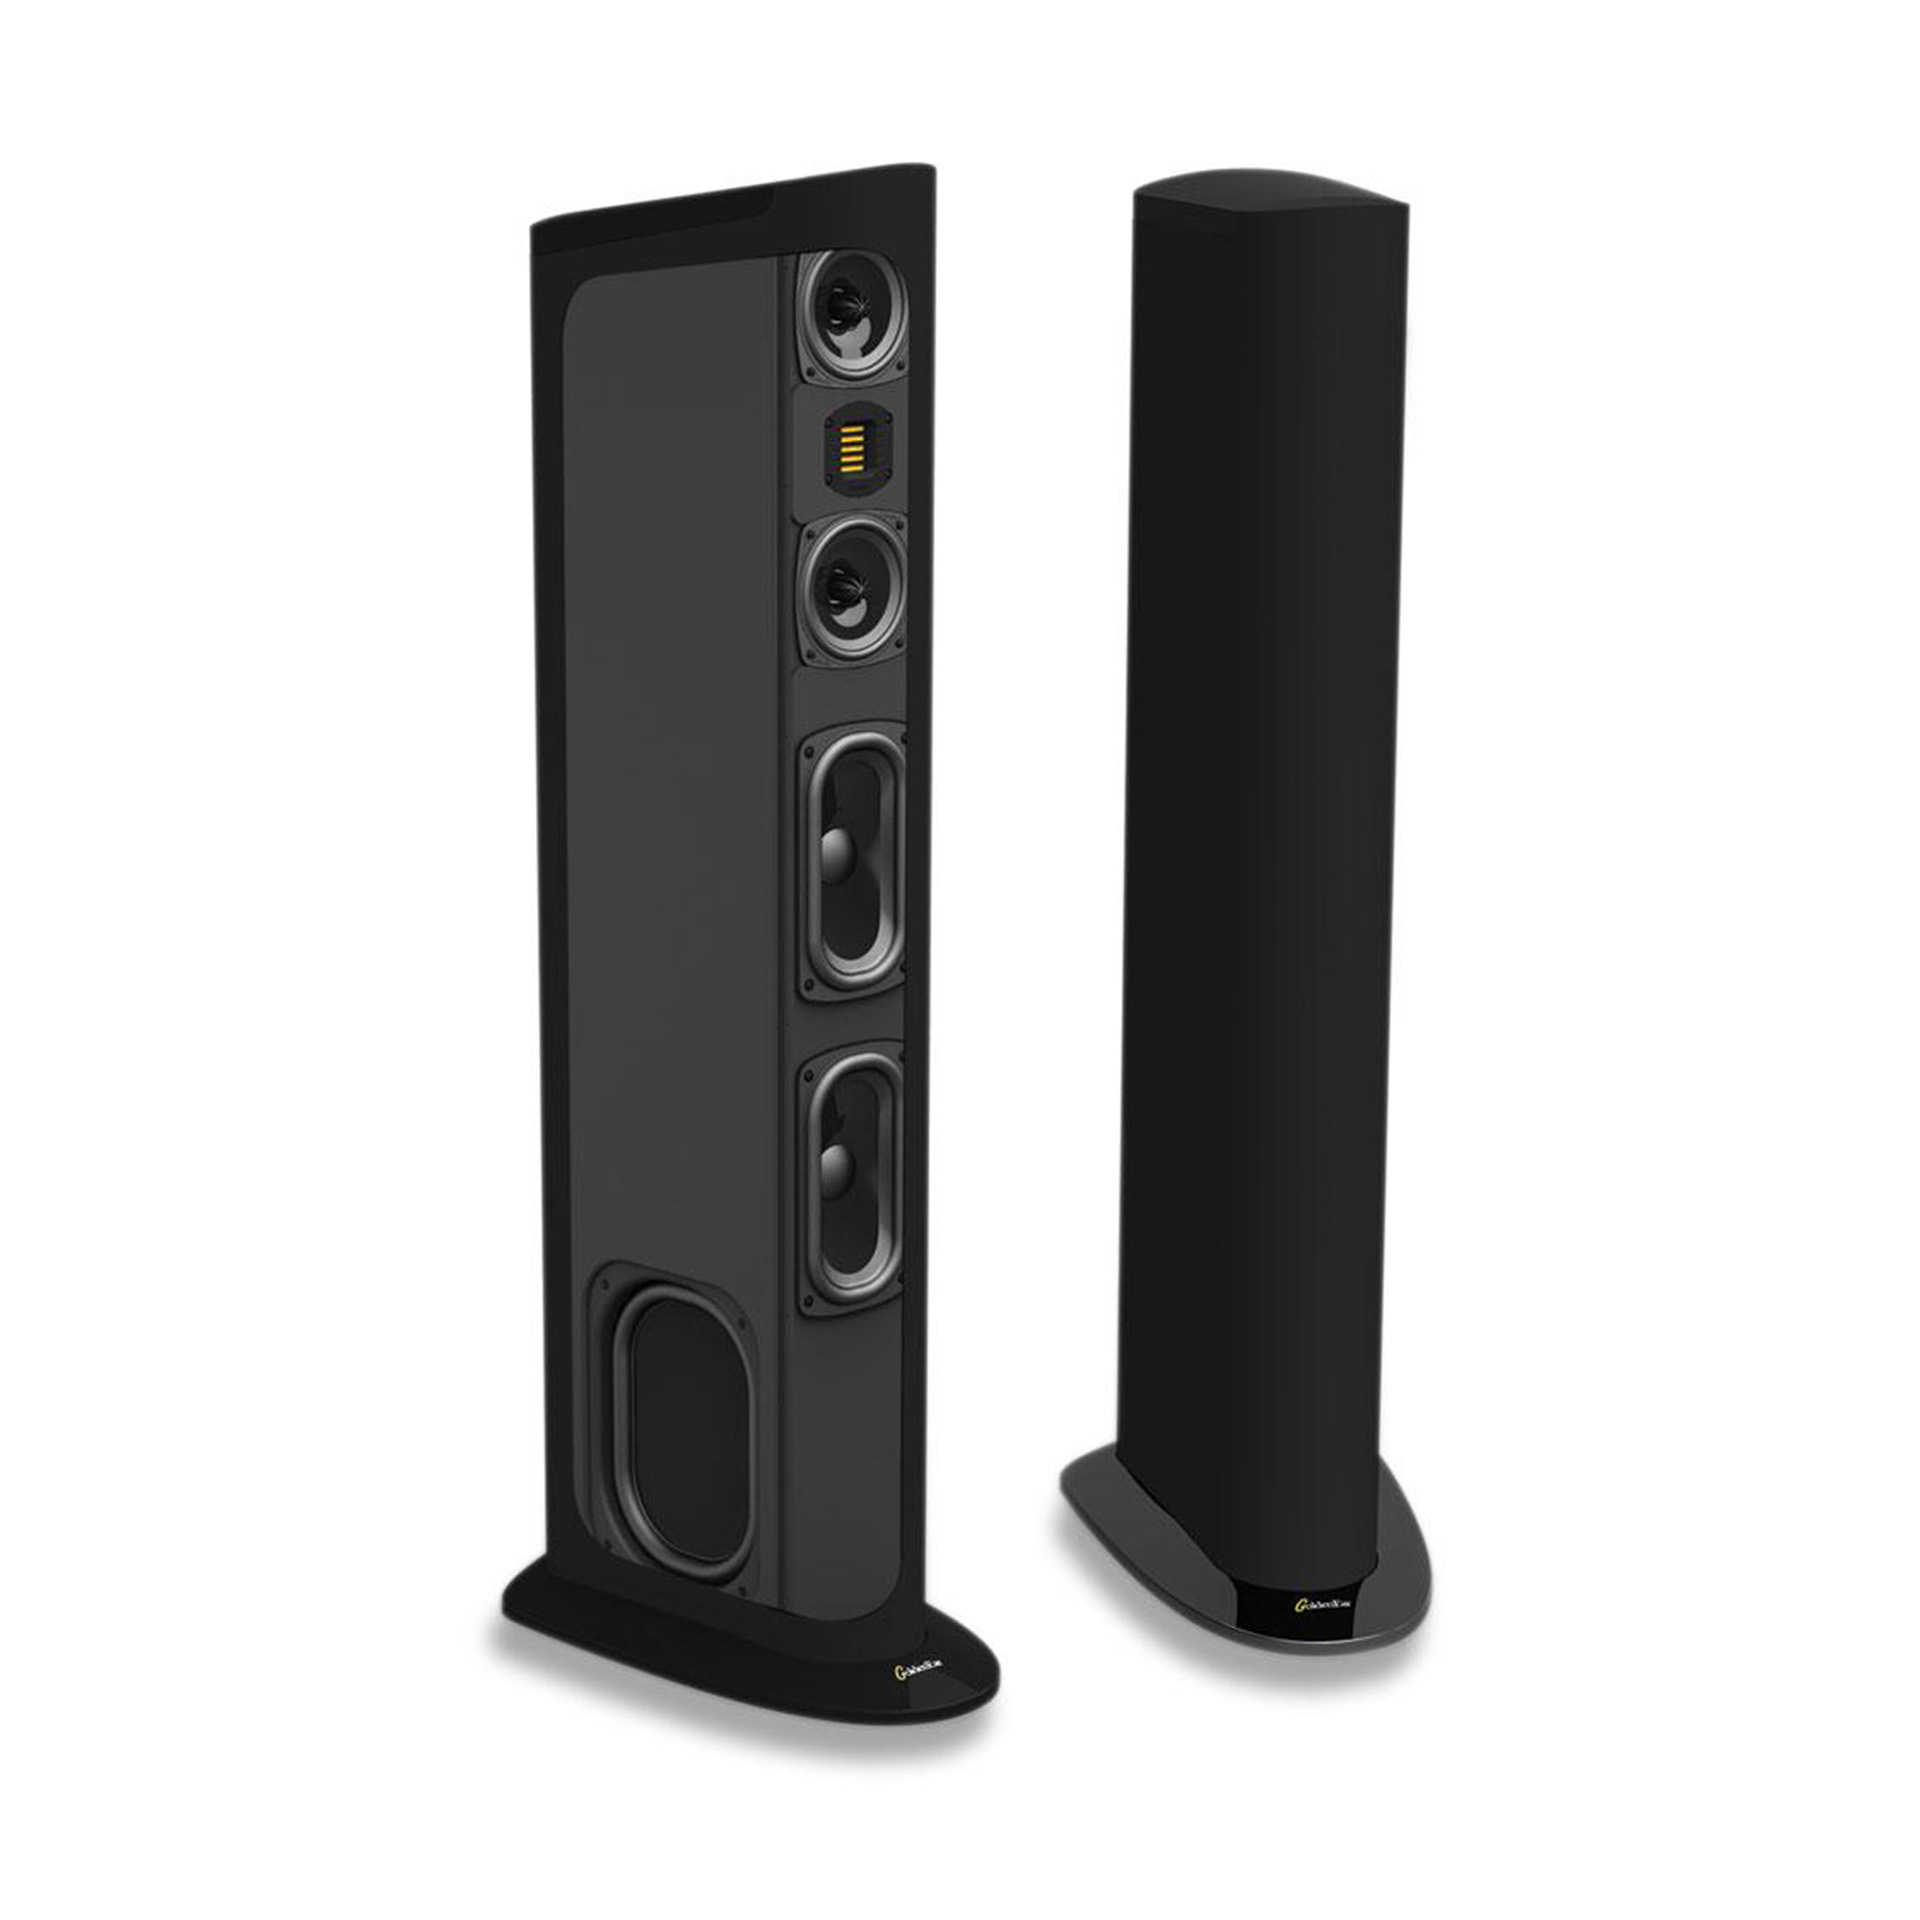 GoldenEar Triton Two - Chattelin Audio Systems